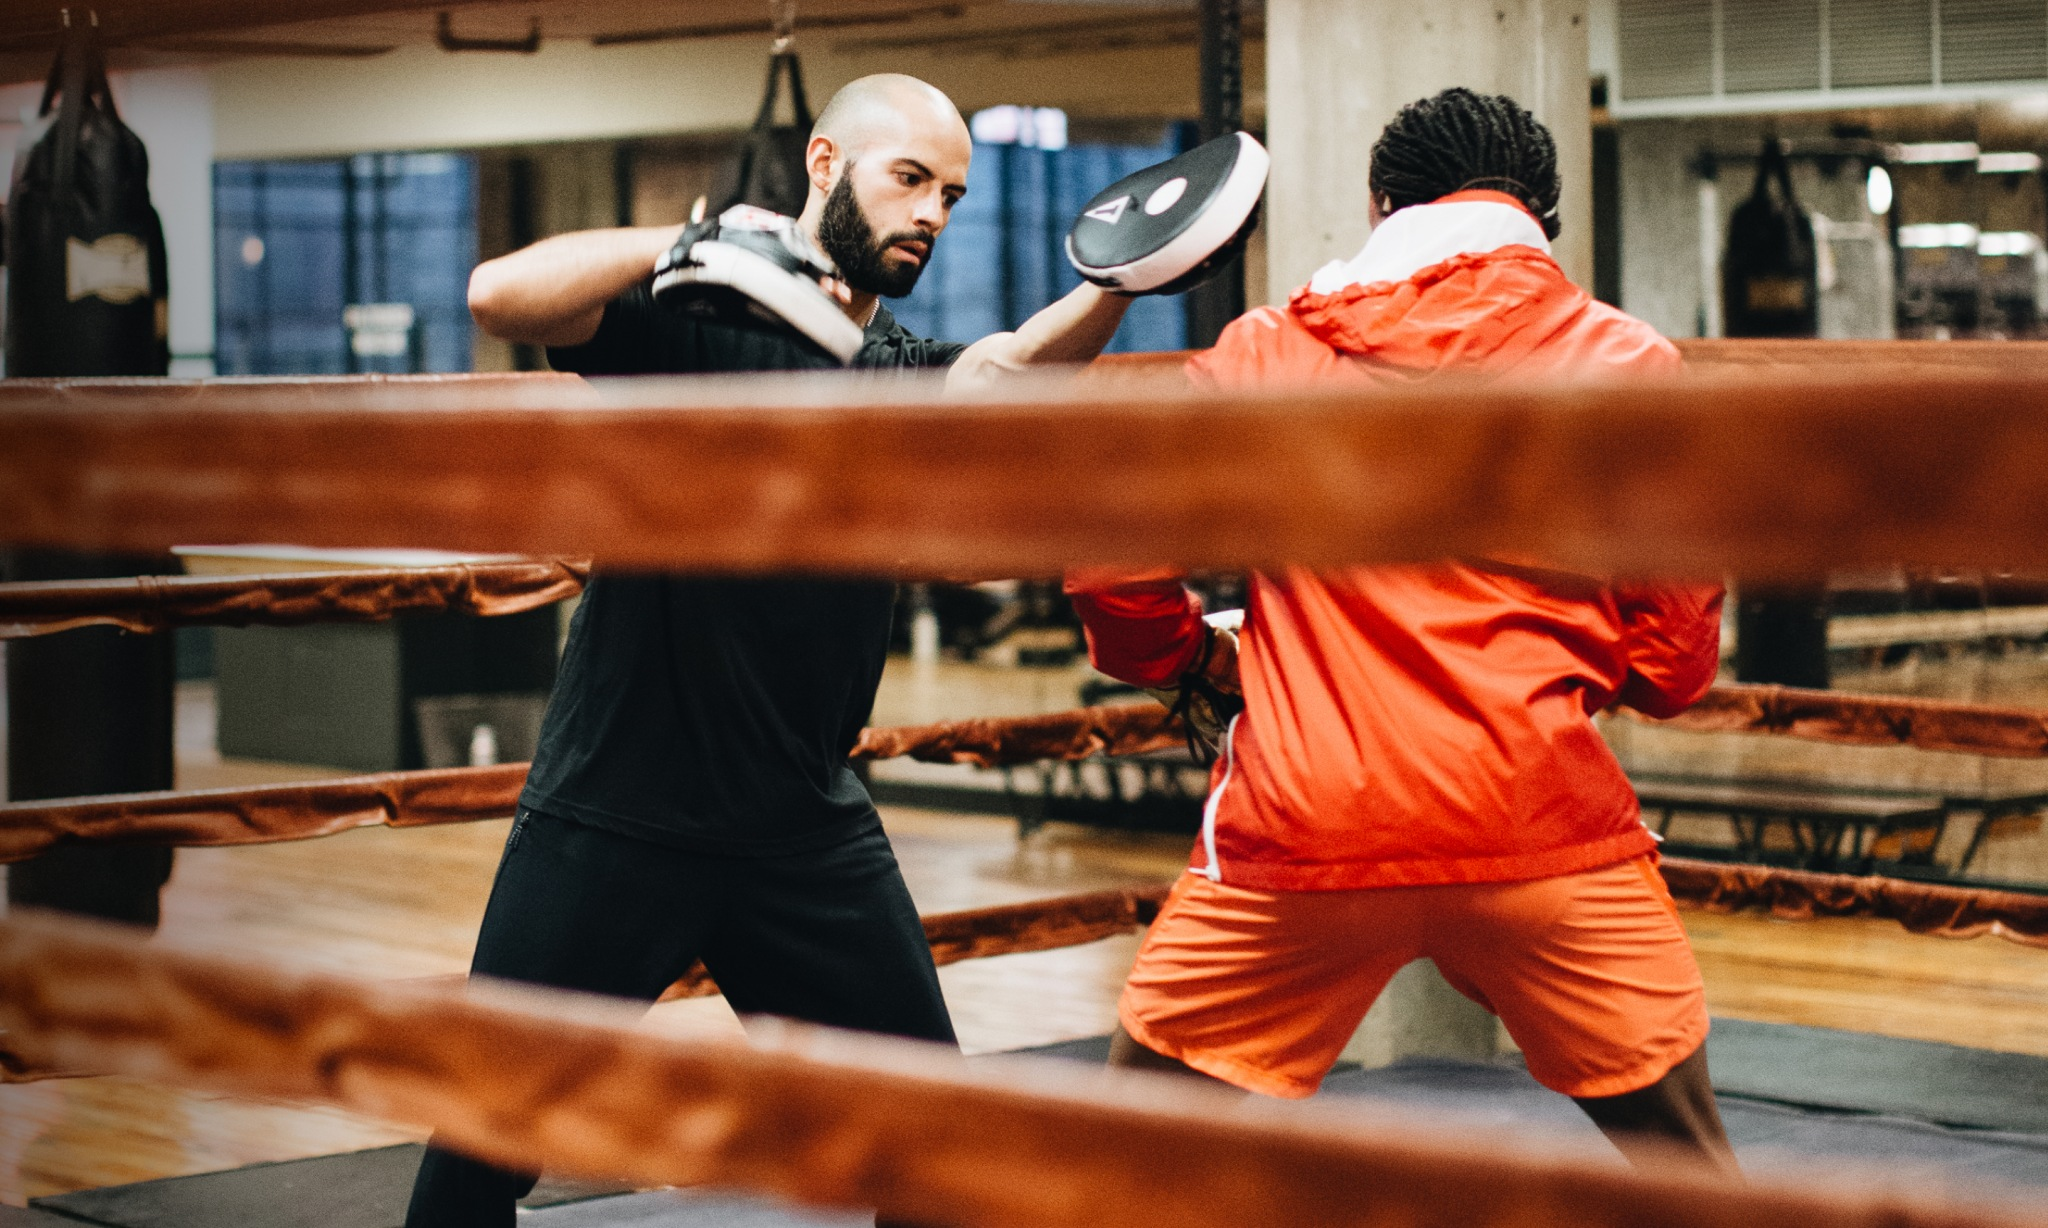 A trainer and a boxer sparring in a ring.